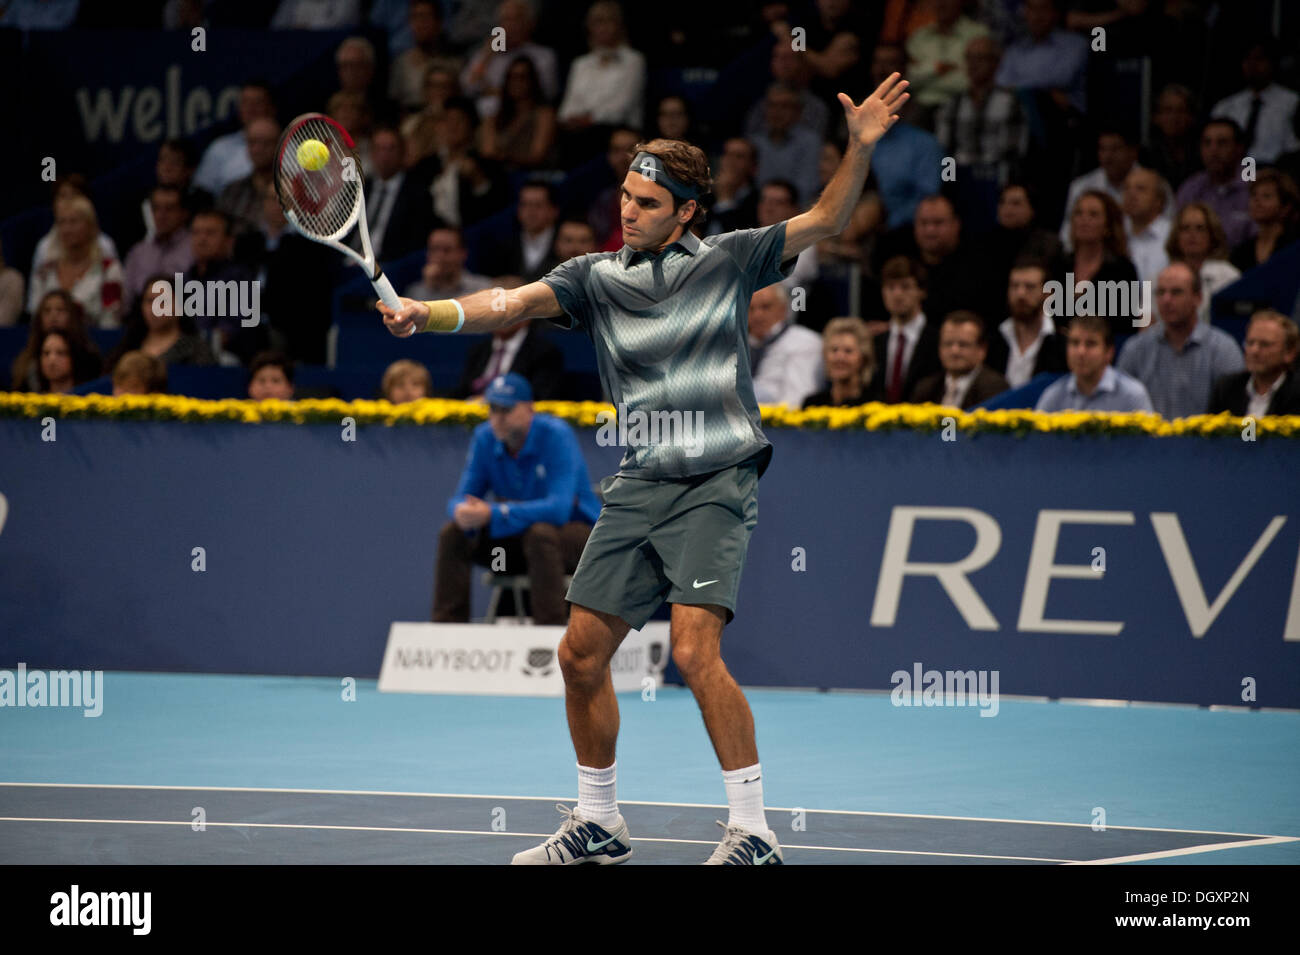 Basel, Switzerland. 27th Oct, 2013. Roger Federer (SUI) hits a volley during the final of the Swiss Indoors at St. Jakobshalle on Sunday. Photo: Miroslav Dakov/ Alamy Live News - Stock Image